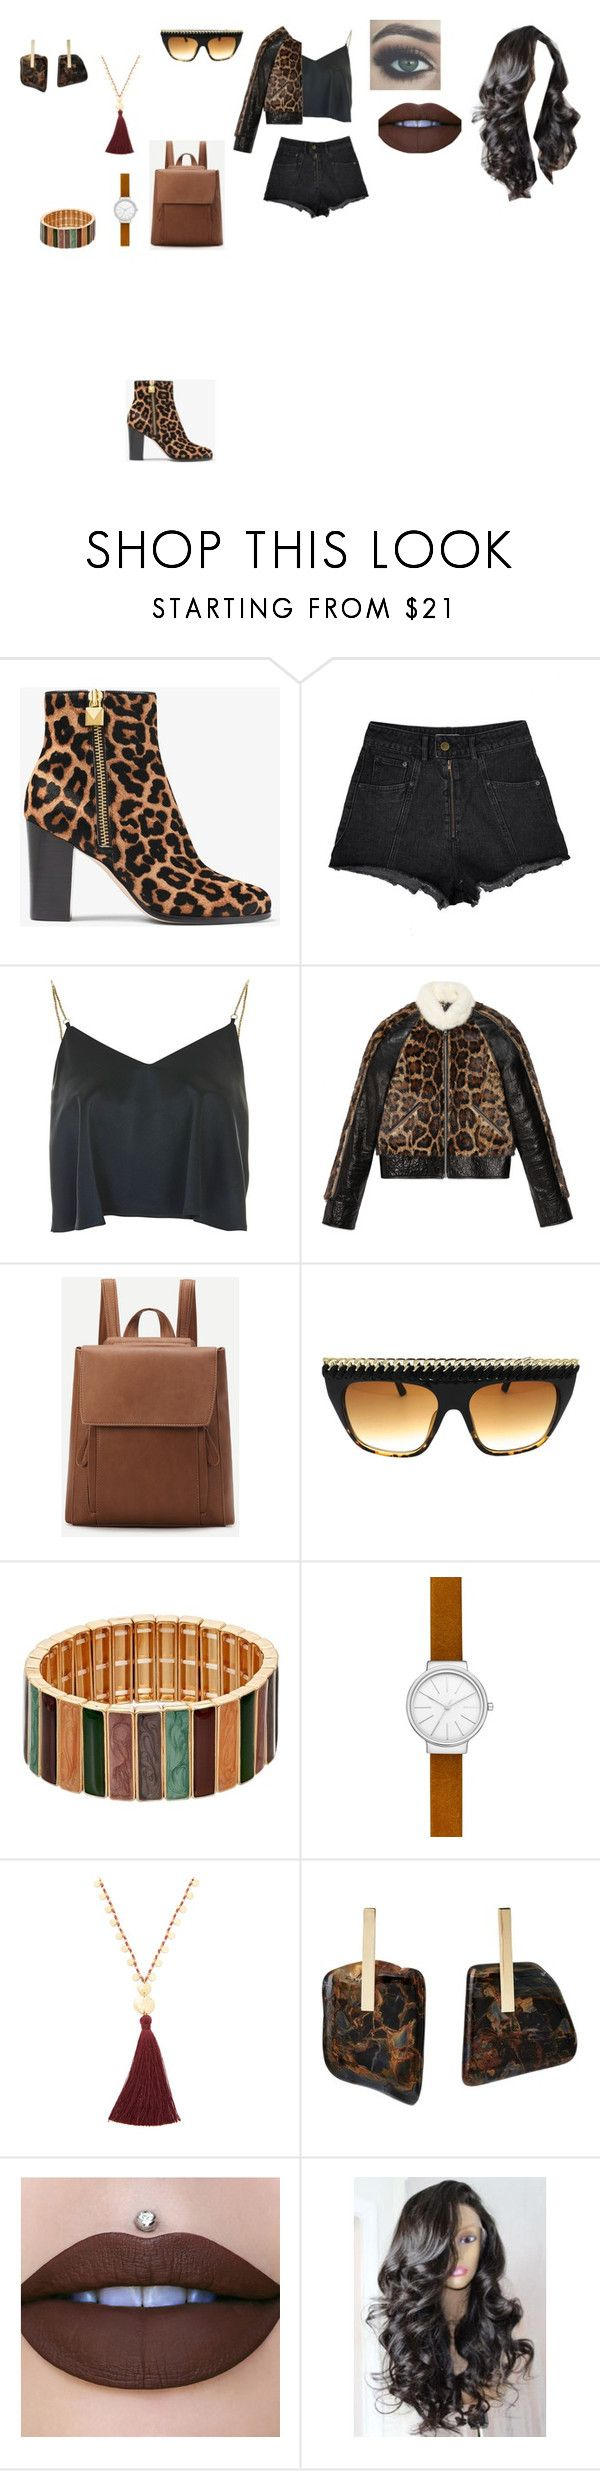 """Casual Outfit"" by helena94-1 on Polyvore featuring MICHAEL Michael Kors, Topshop, Gucci, Skagen, Gorjana, Kathleen Whitaker and polyvorefashion"